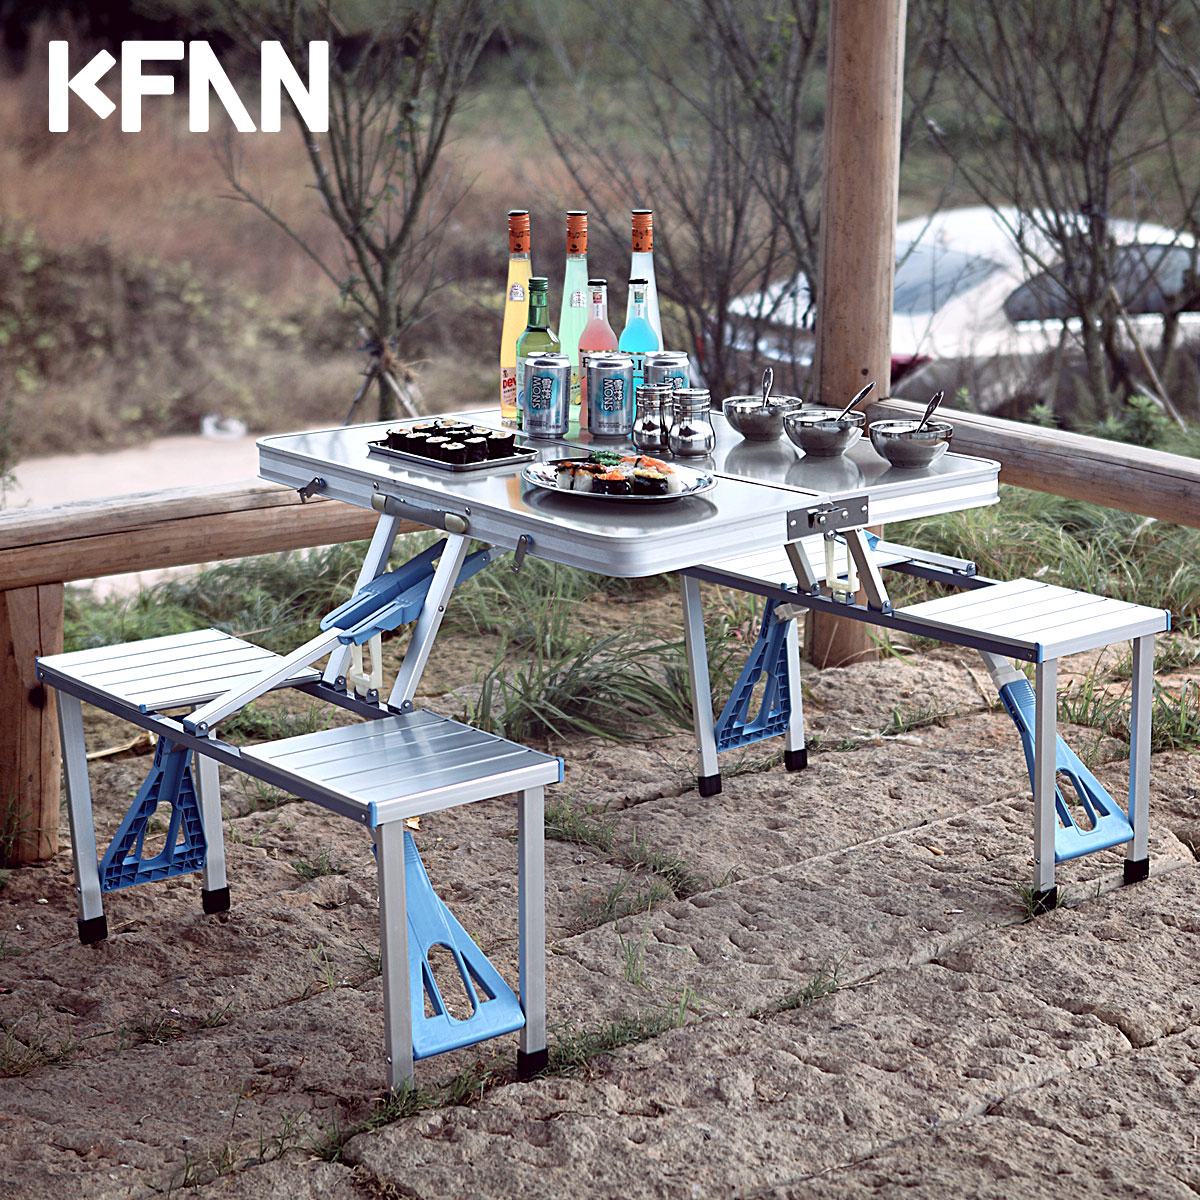 Buy Kfan outdoor folding tables and chairs set kit all aluminum portable  tables exhibition industry car contained portable outdoor dining table in  Cheap ... - Buy Kfan Outdoor Folding Tables And Chairs Set Kit All Aluminum